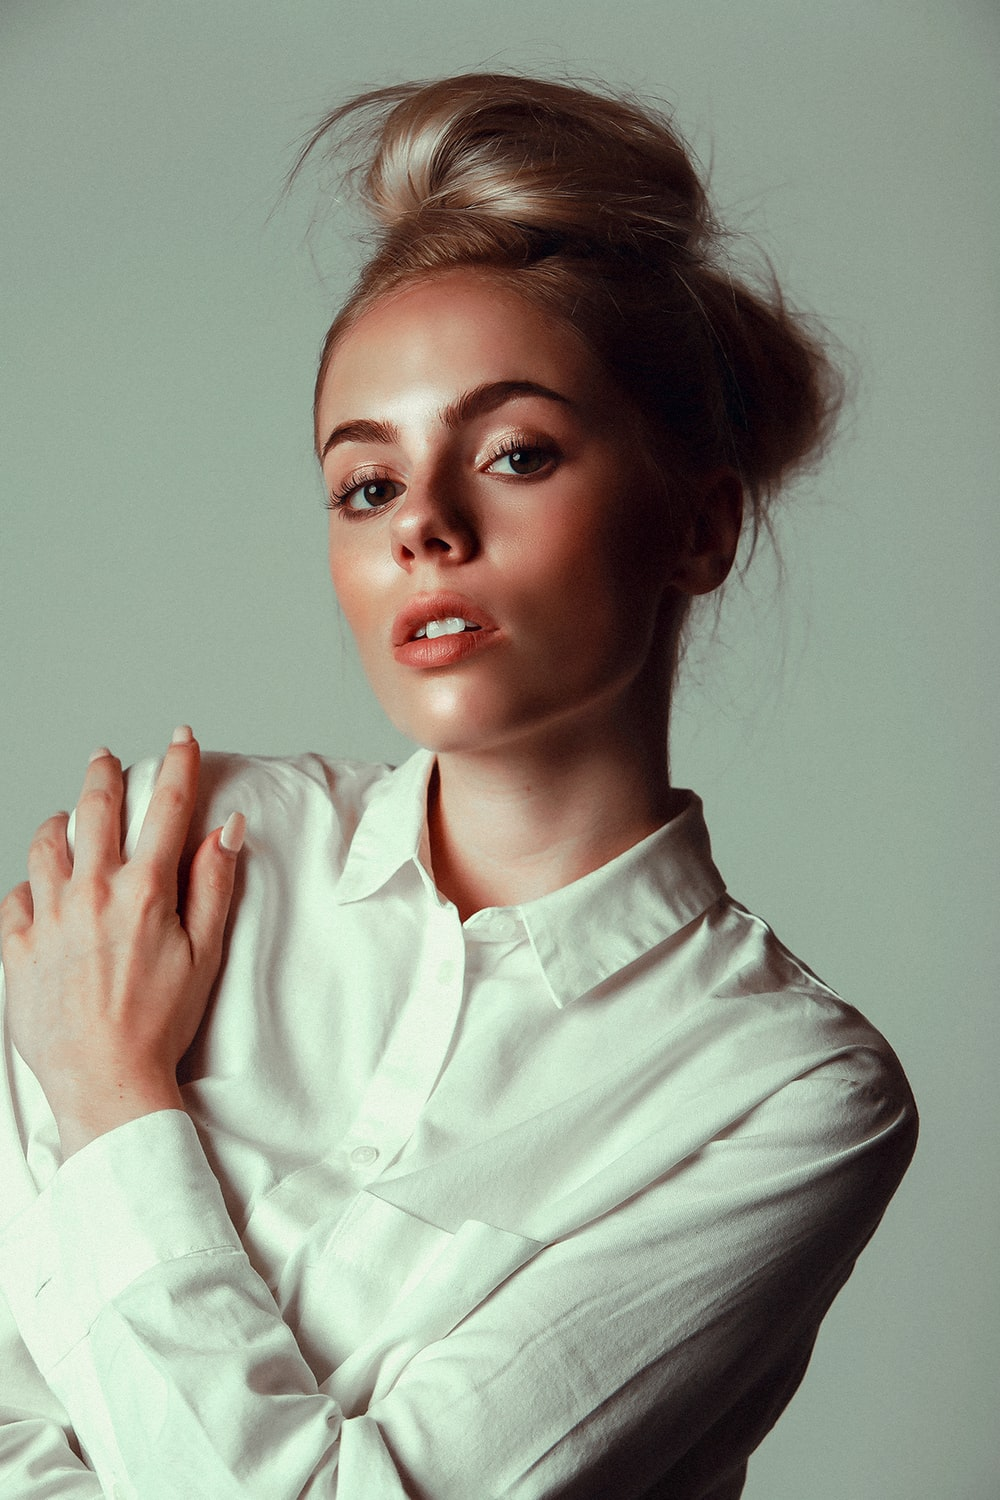 woman in white dress shirt